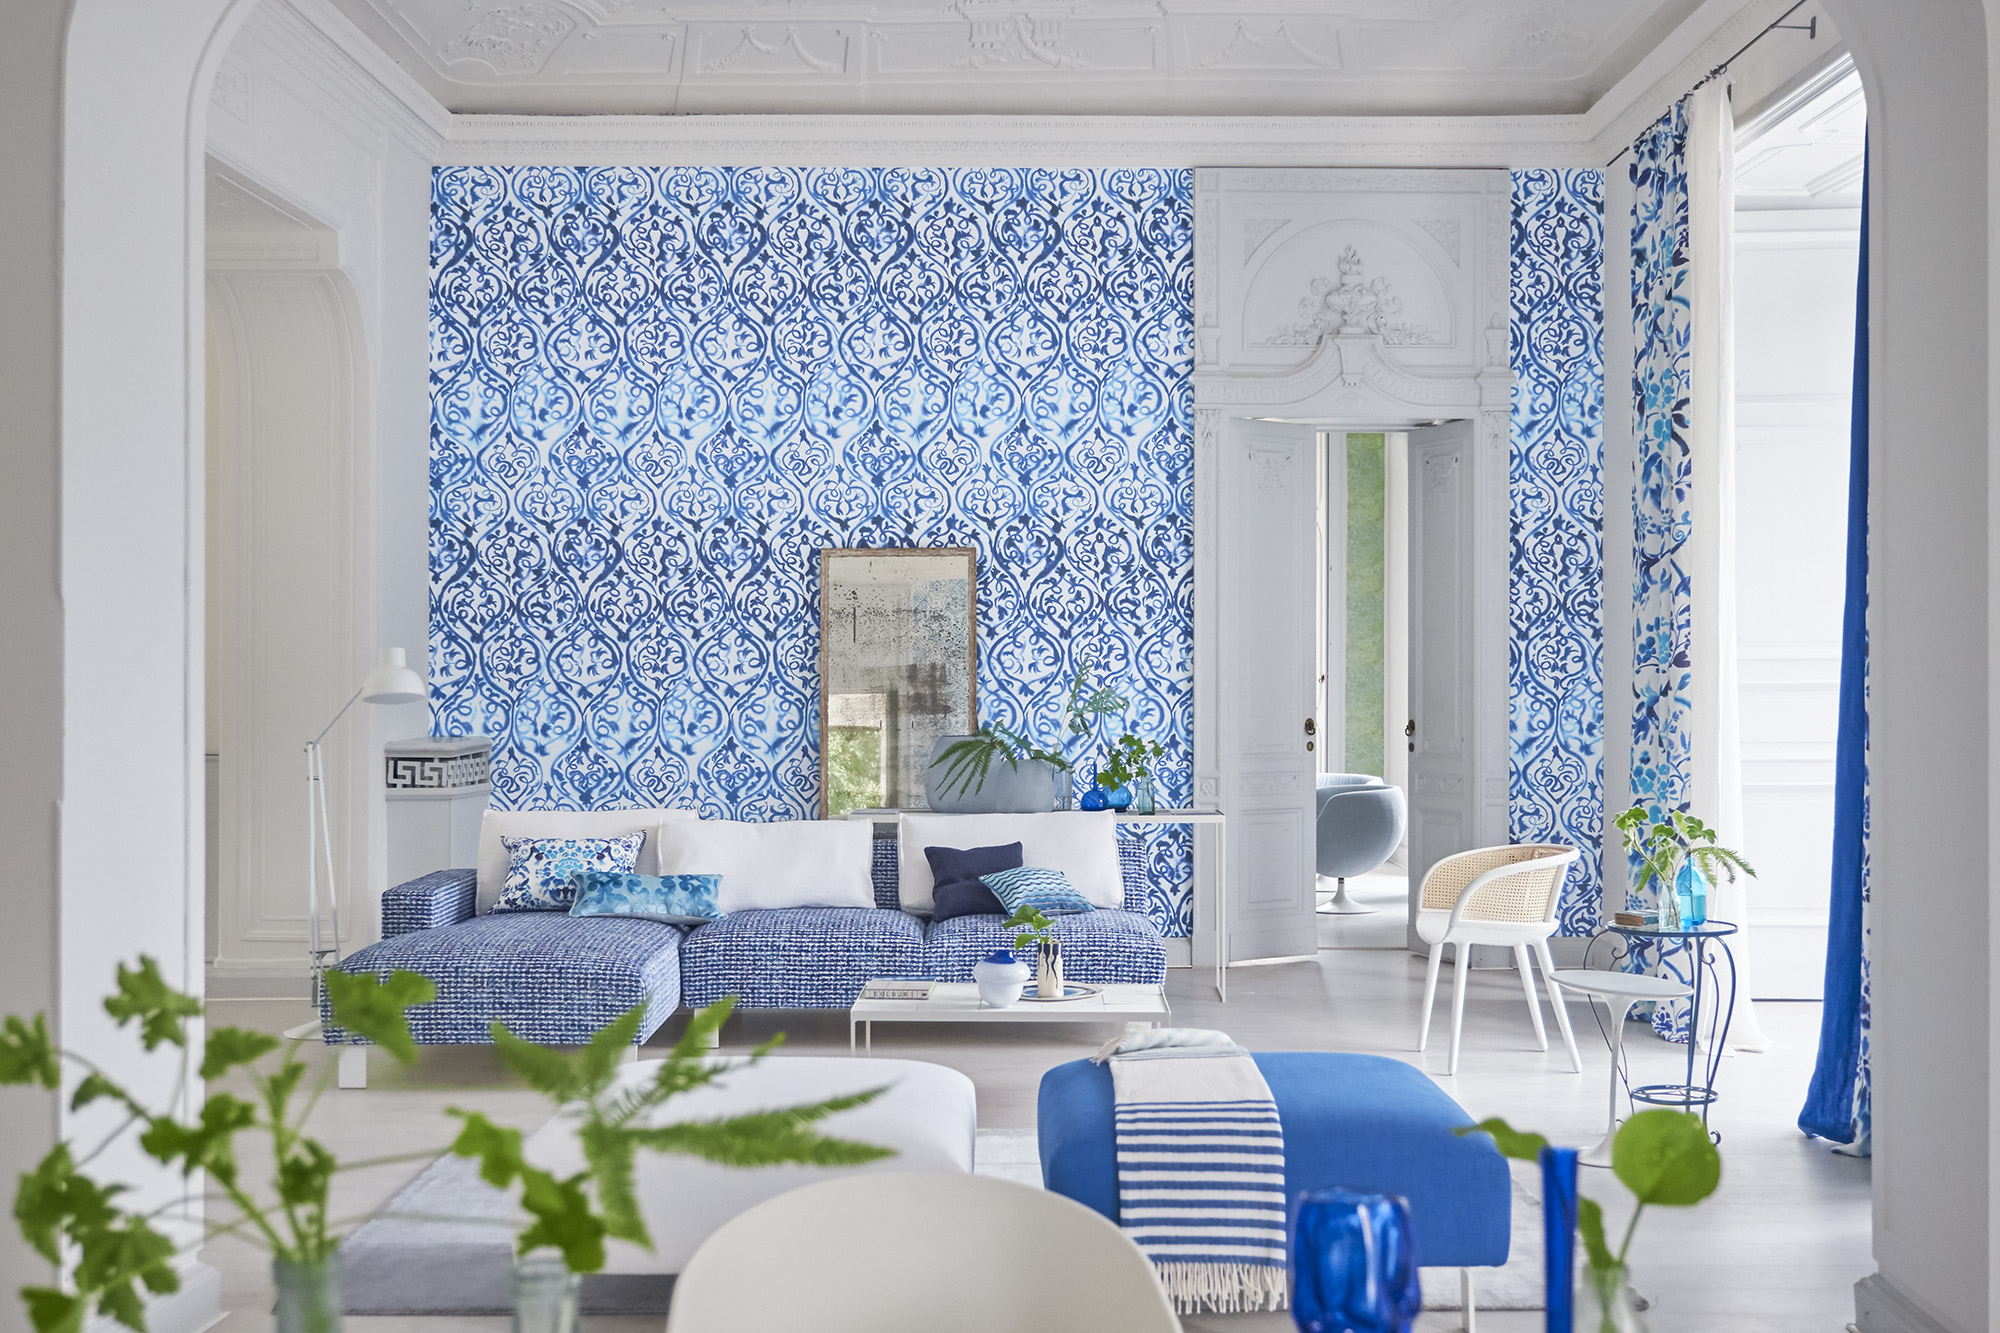 Murine by Designers Guild